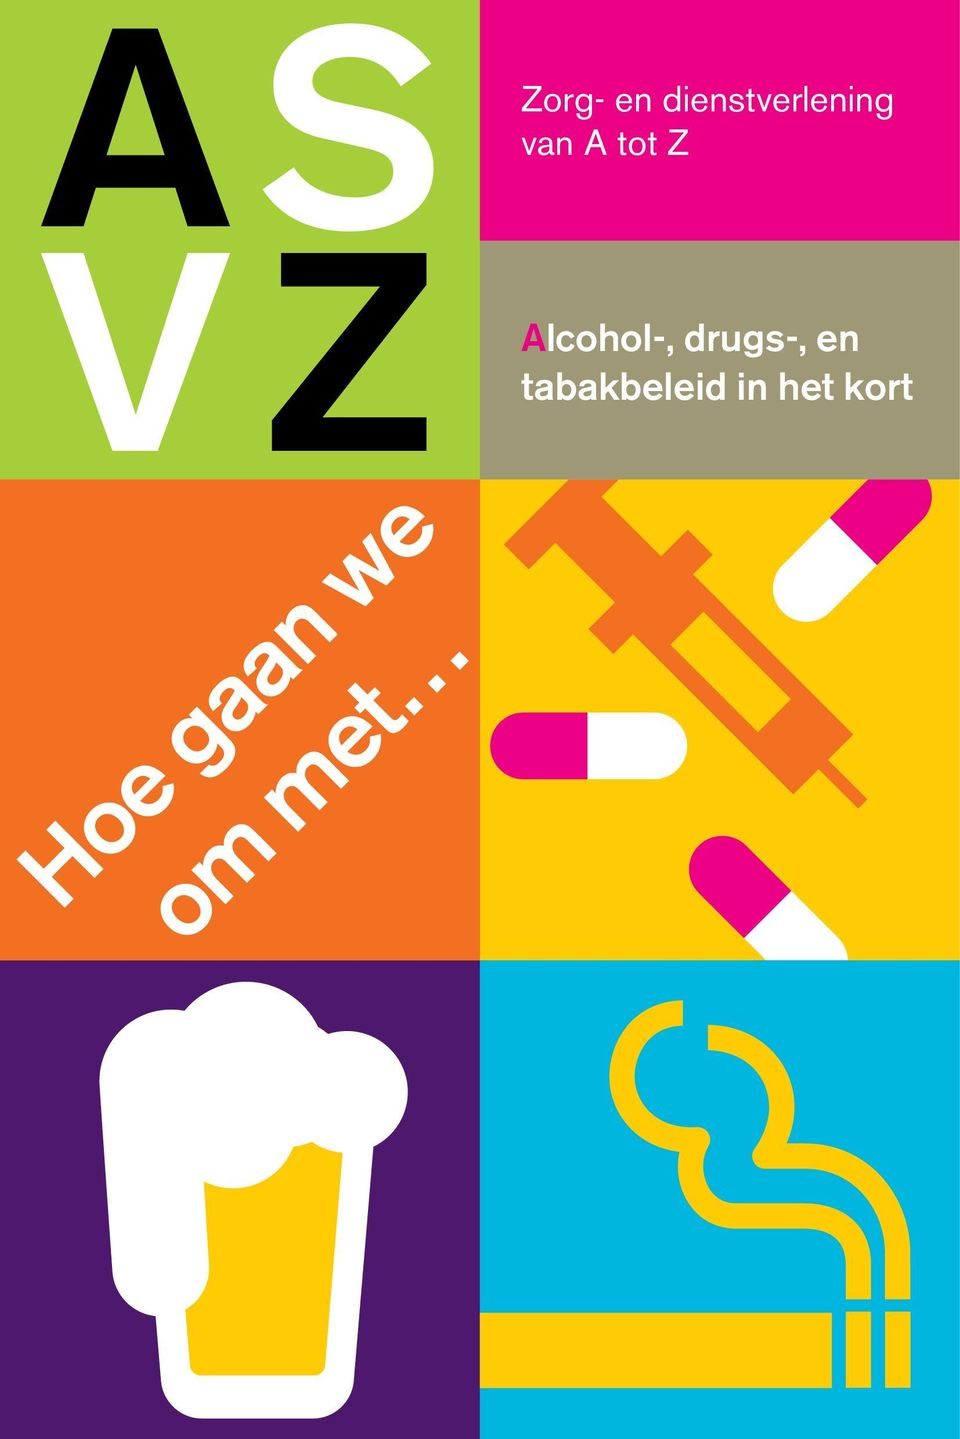 drugs-, en tabakbeleid